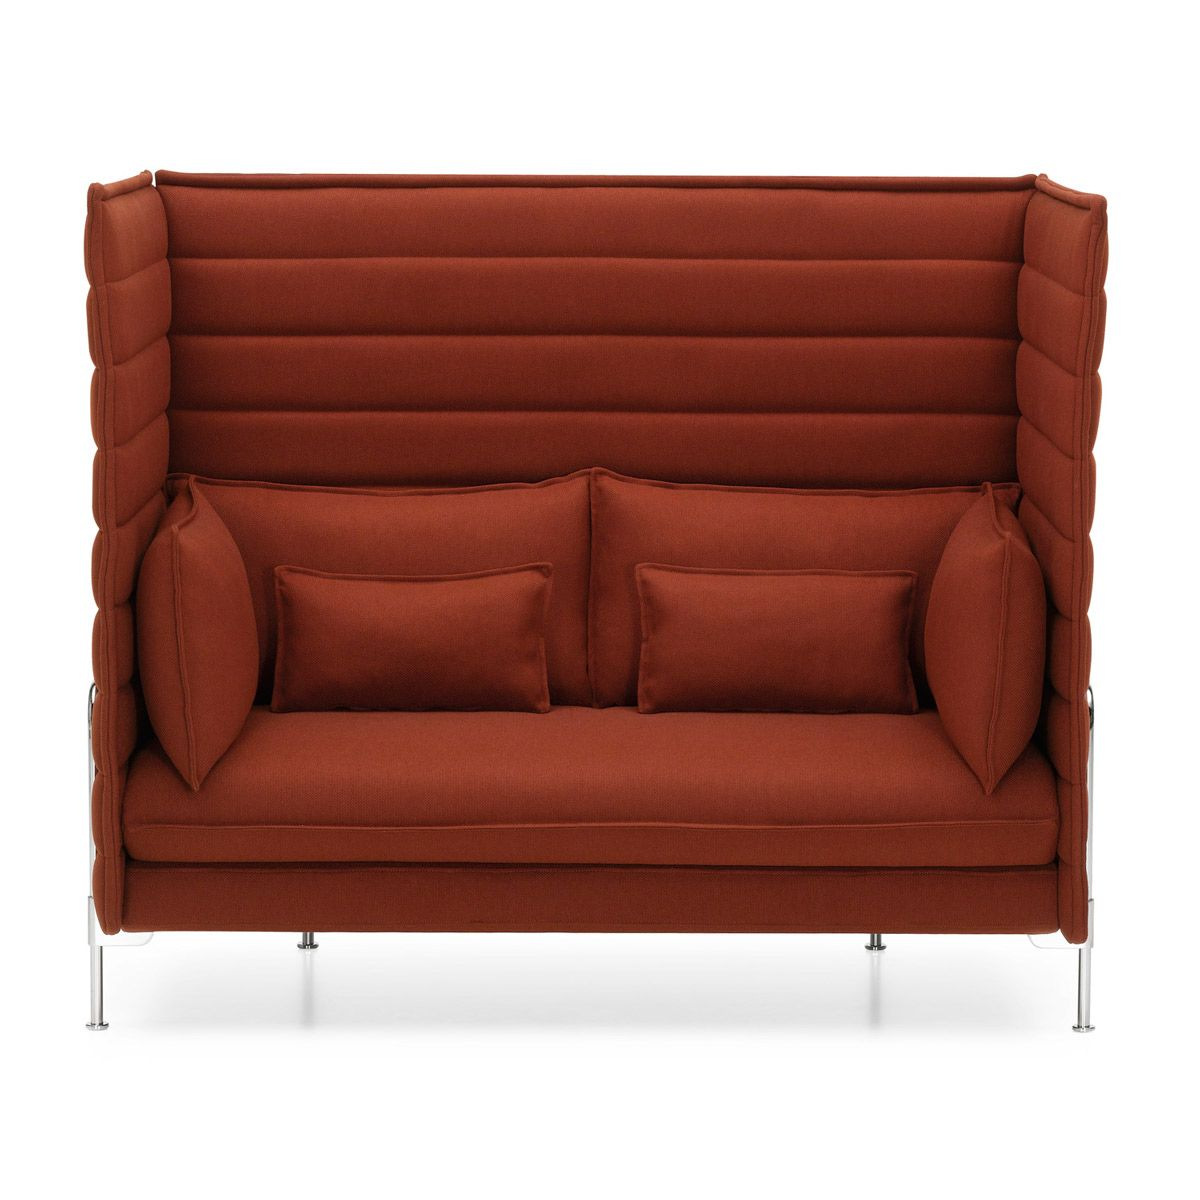 alcove highback sofa by vitra in the online store naharro